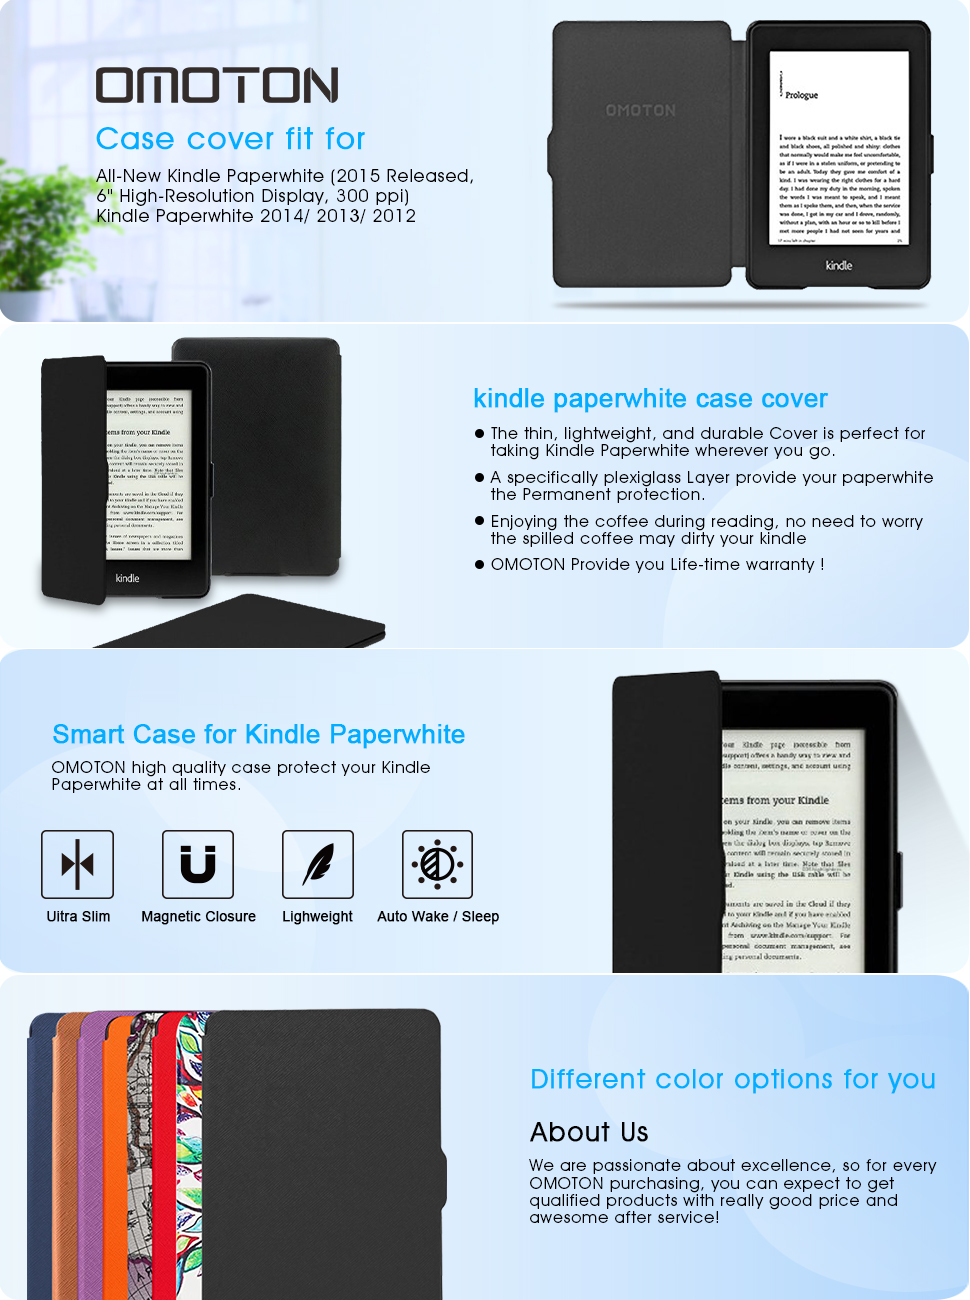 OMOTON Kindle Paperwhite Case Cover - The Thinnest Lightest PU Leather  Smart Cover Kindle Paperwhite fits All Paperwhite Generations Prior to 2018